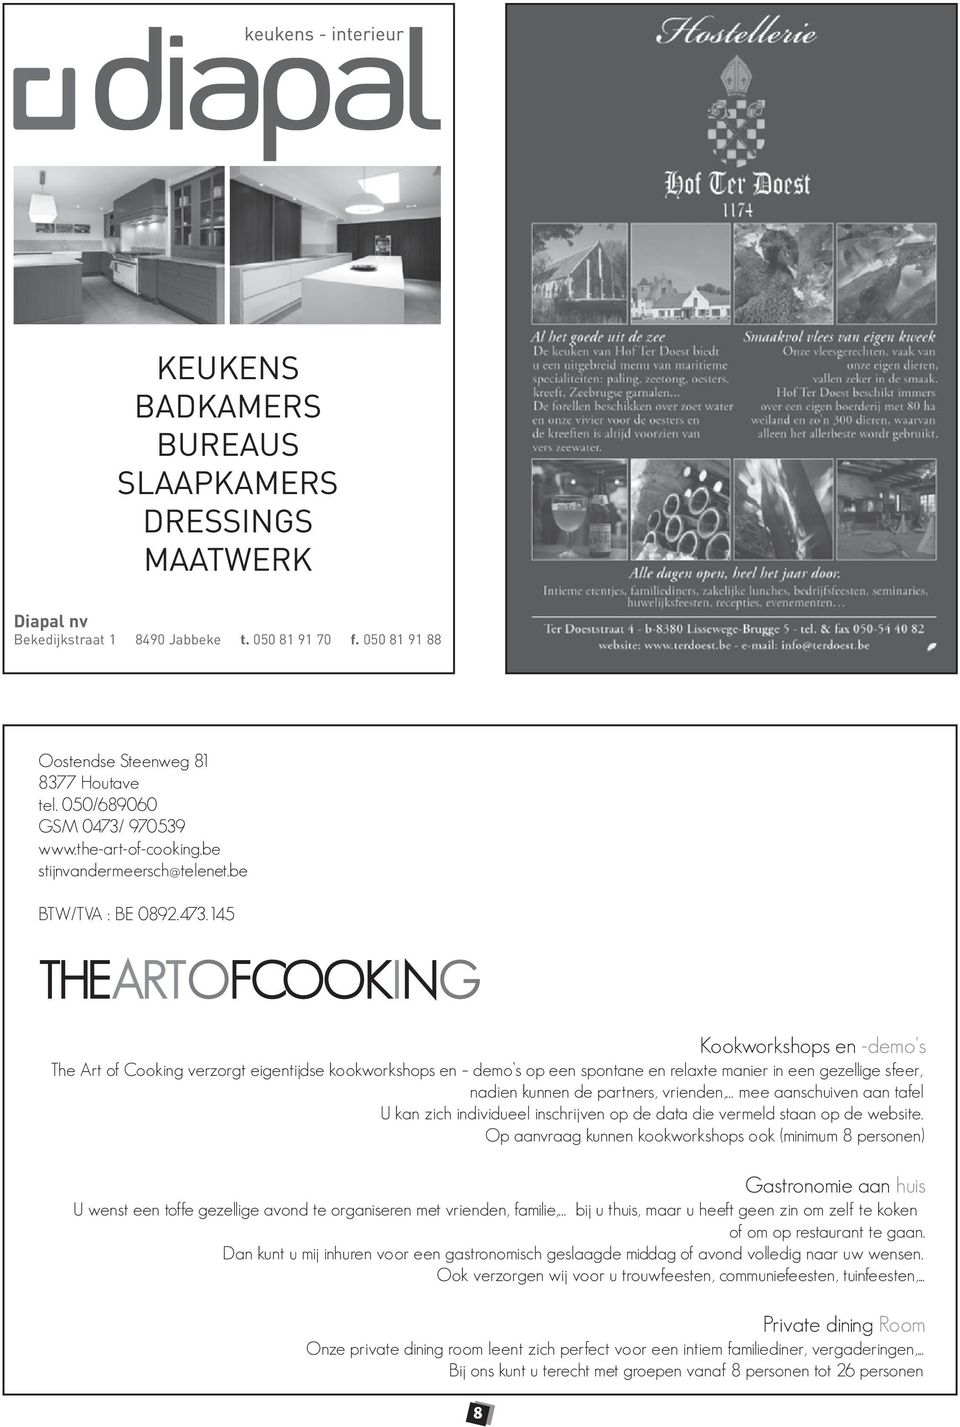 970539 www.the-art-of-cooking.be stijnvandermeersch@telenet.be BTW/TVA : BE 0892.473.